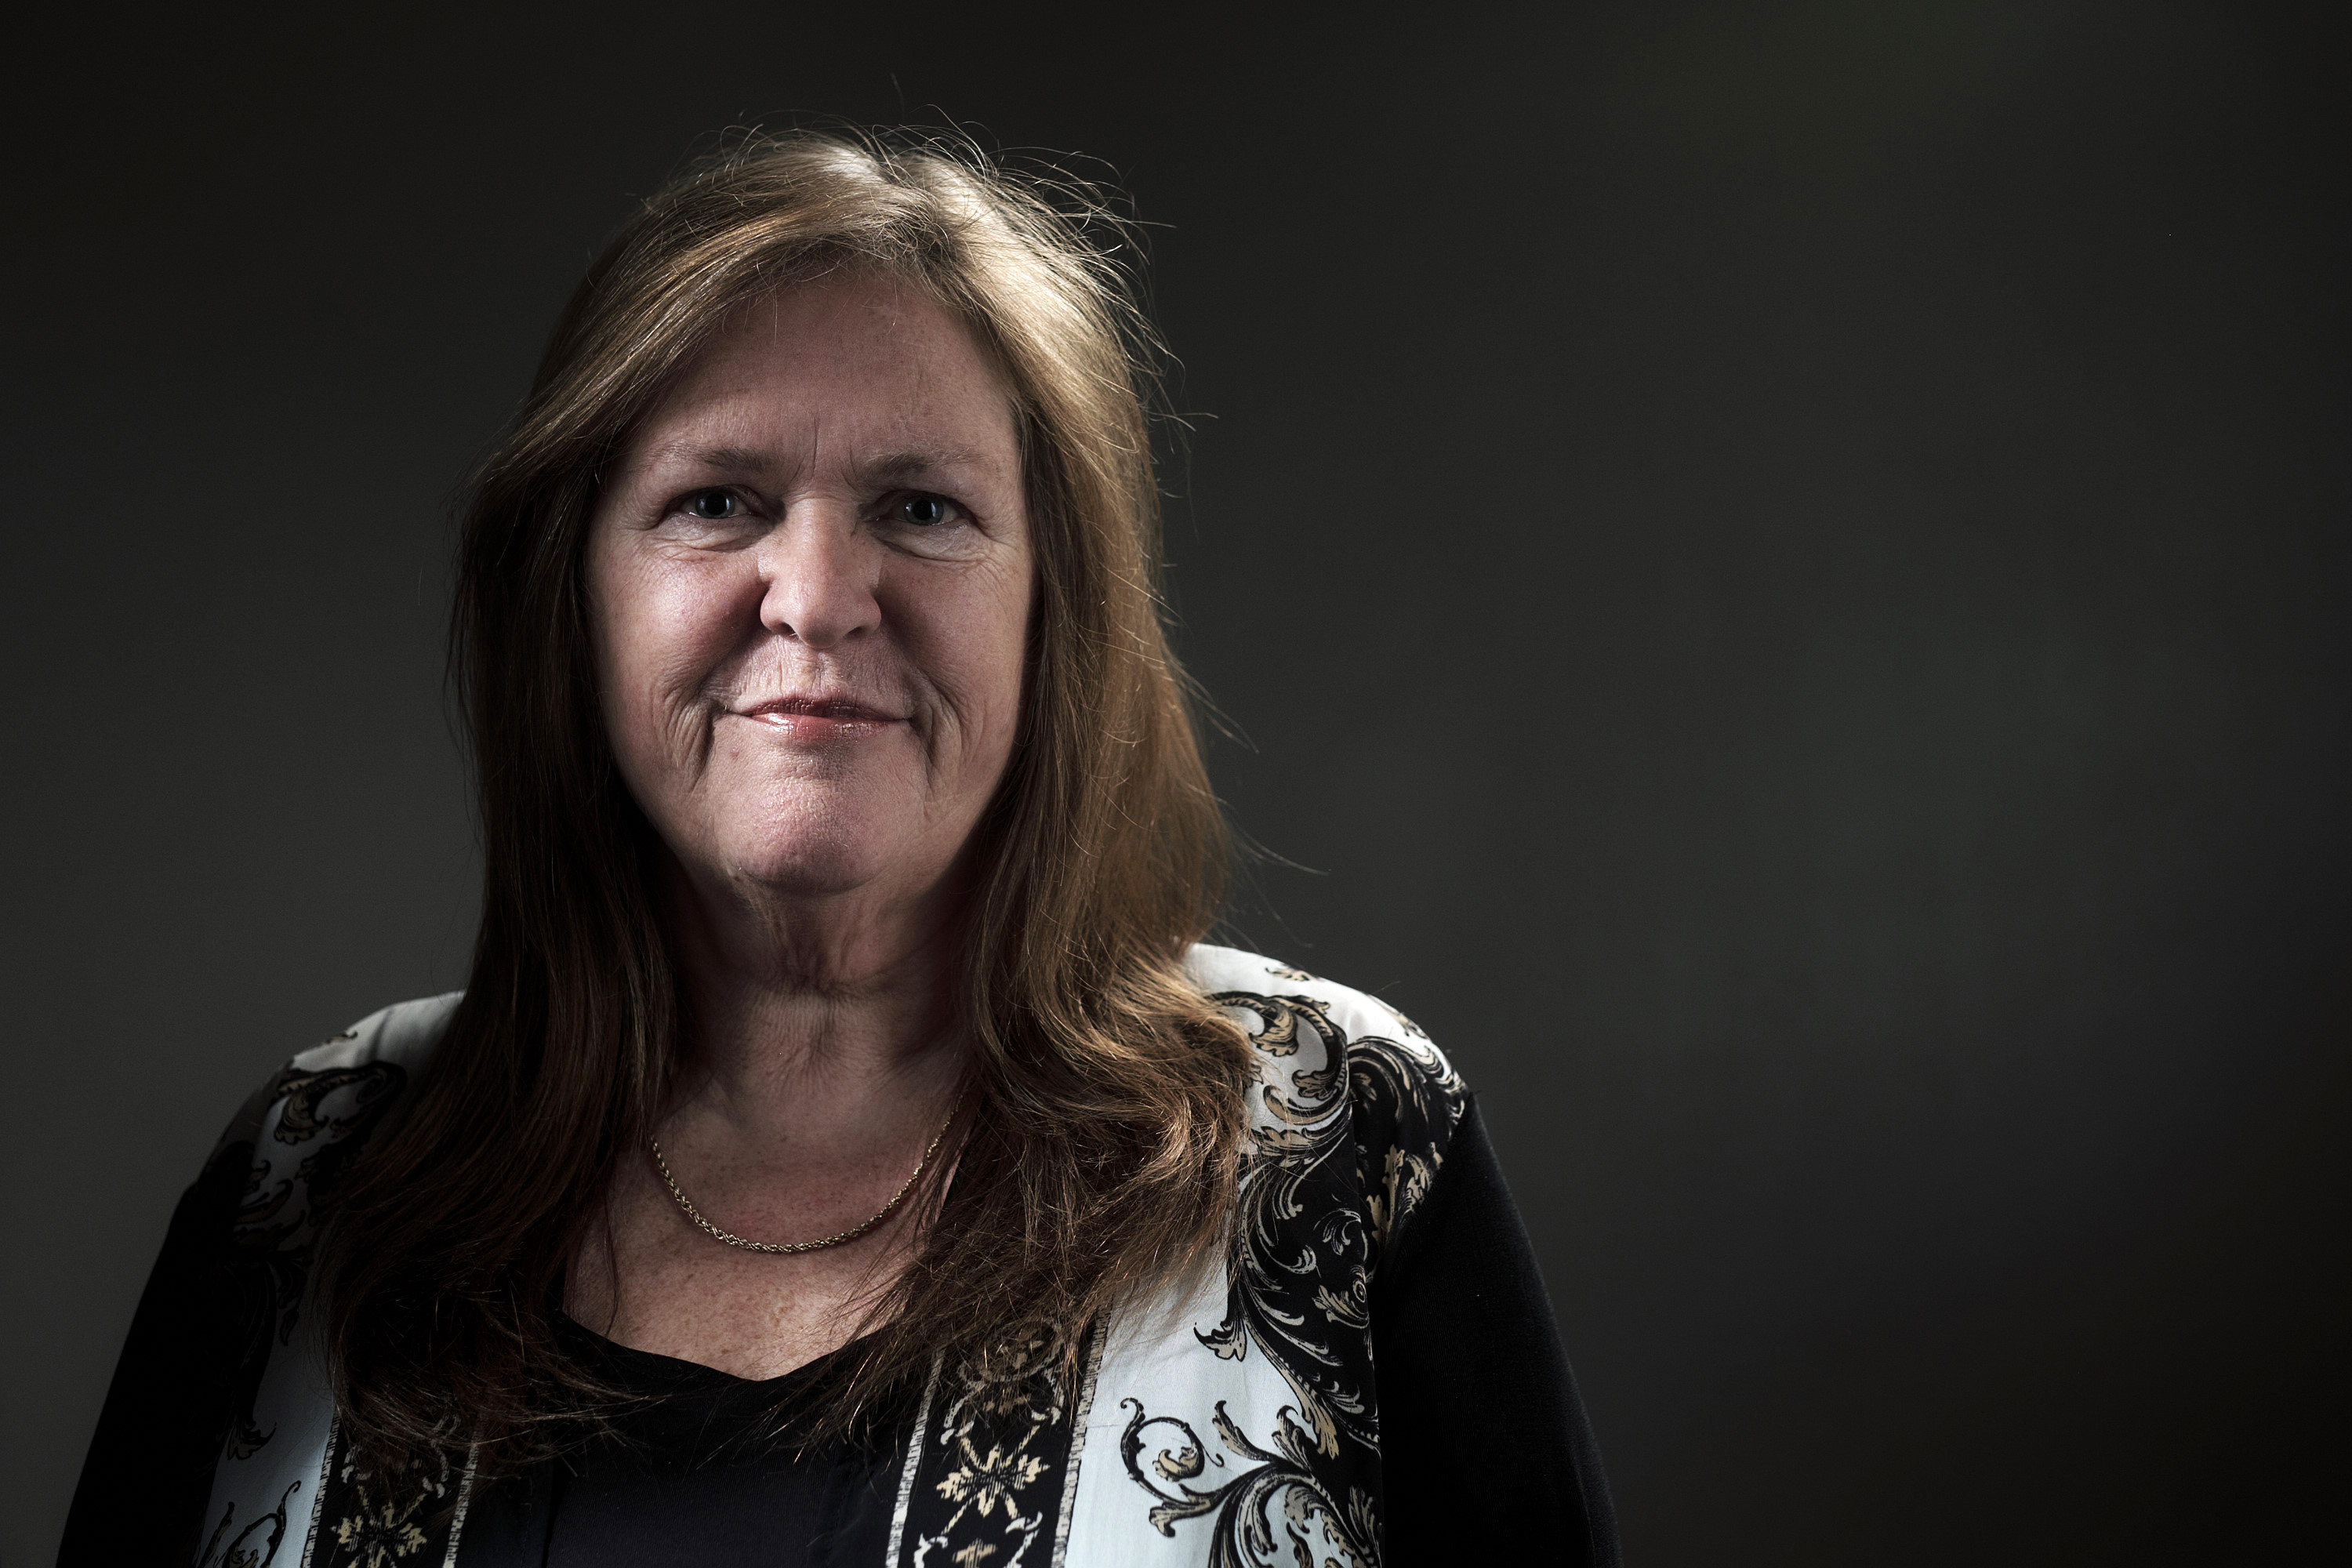 Jane Sanders, wife of Vermont Senator and 2016 Democratic presidential candidate Bernie Sanders, stands for a photograph following a campaign event and interview in Fort Madison, Iowa on Jan. 29, 2016.